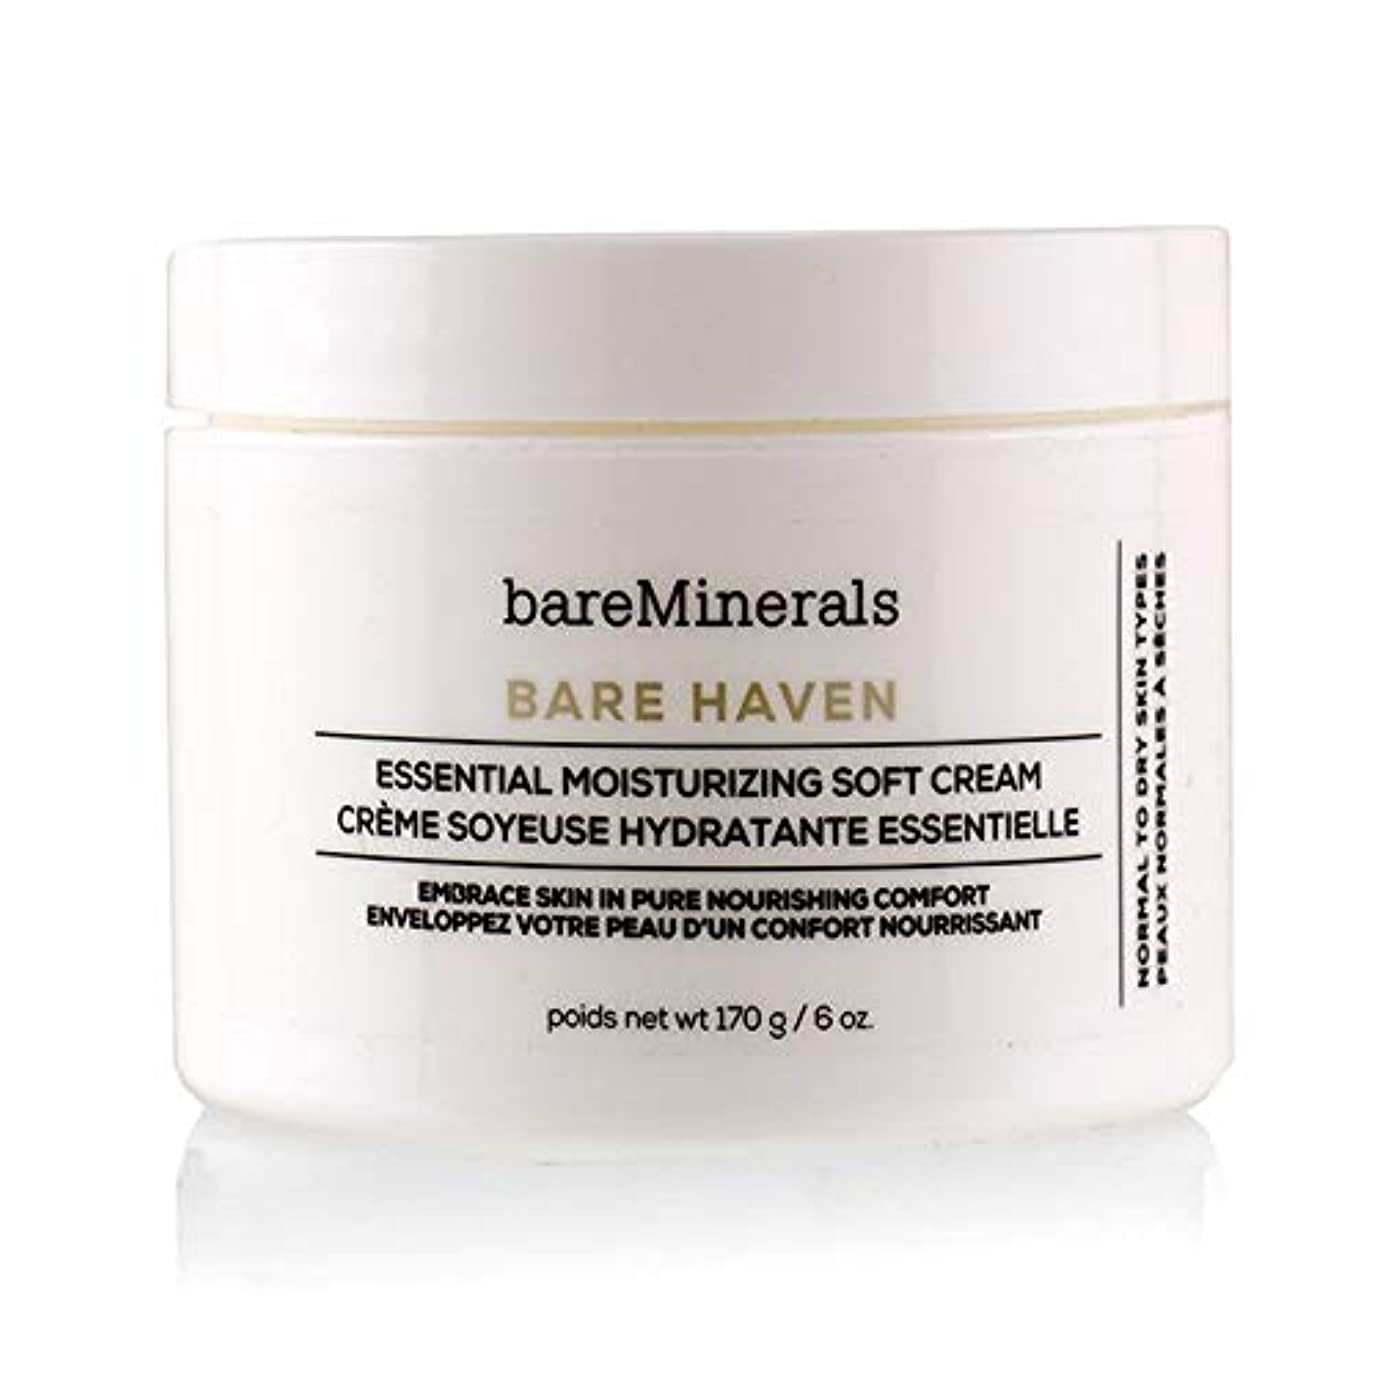 選ぶ導出フレキシブルベアミネラル Bare Haven Essential Moisturizing Soft Cream - Normal To Dry Skin Types (Salon Size) 170g/6oz並行輸入品